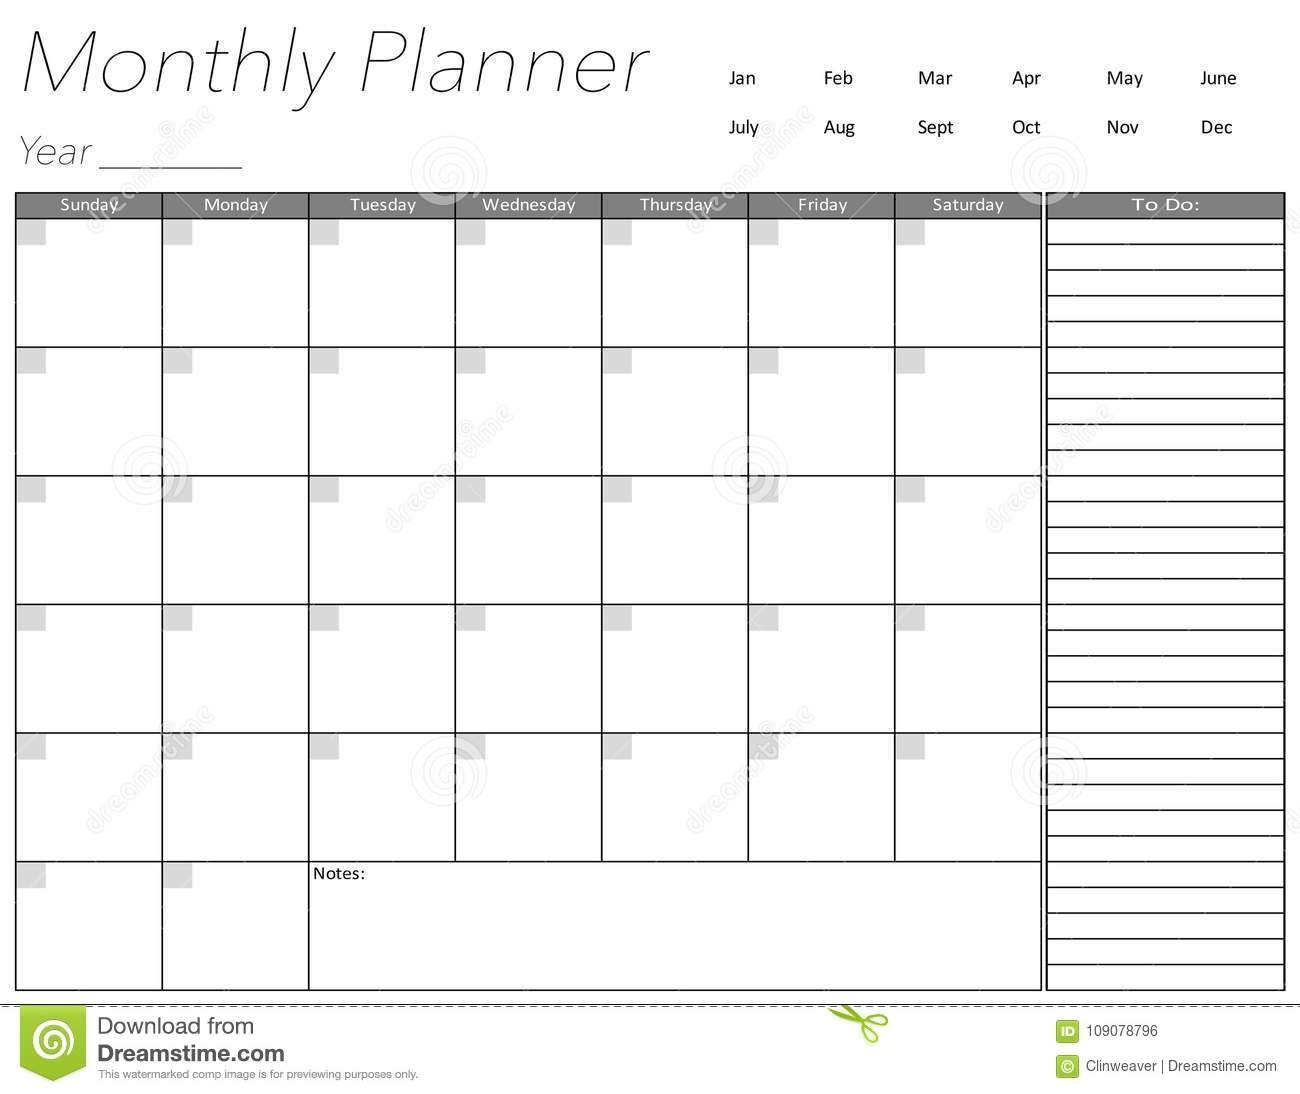 Blank Monthly Planner Page Stock Illustration. Illustration Of Schedule - 109078796